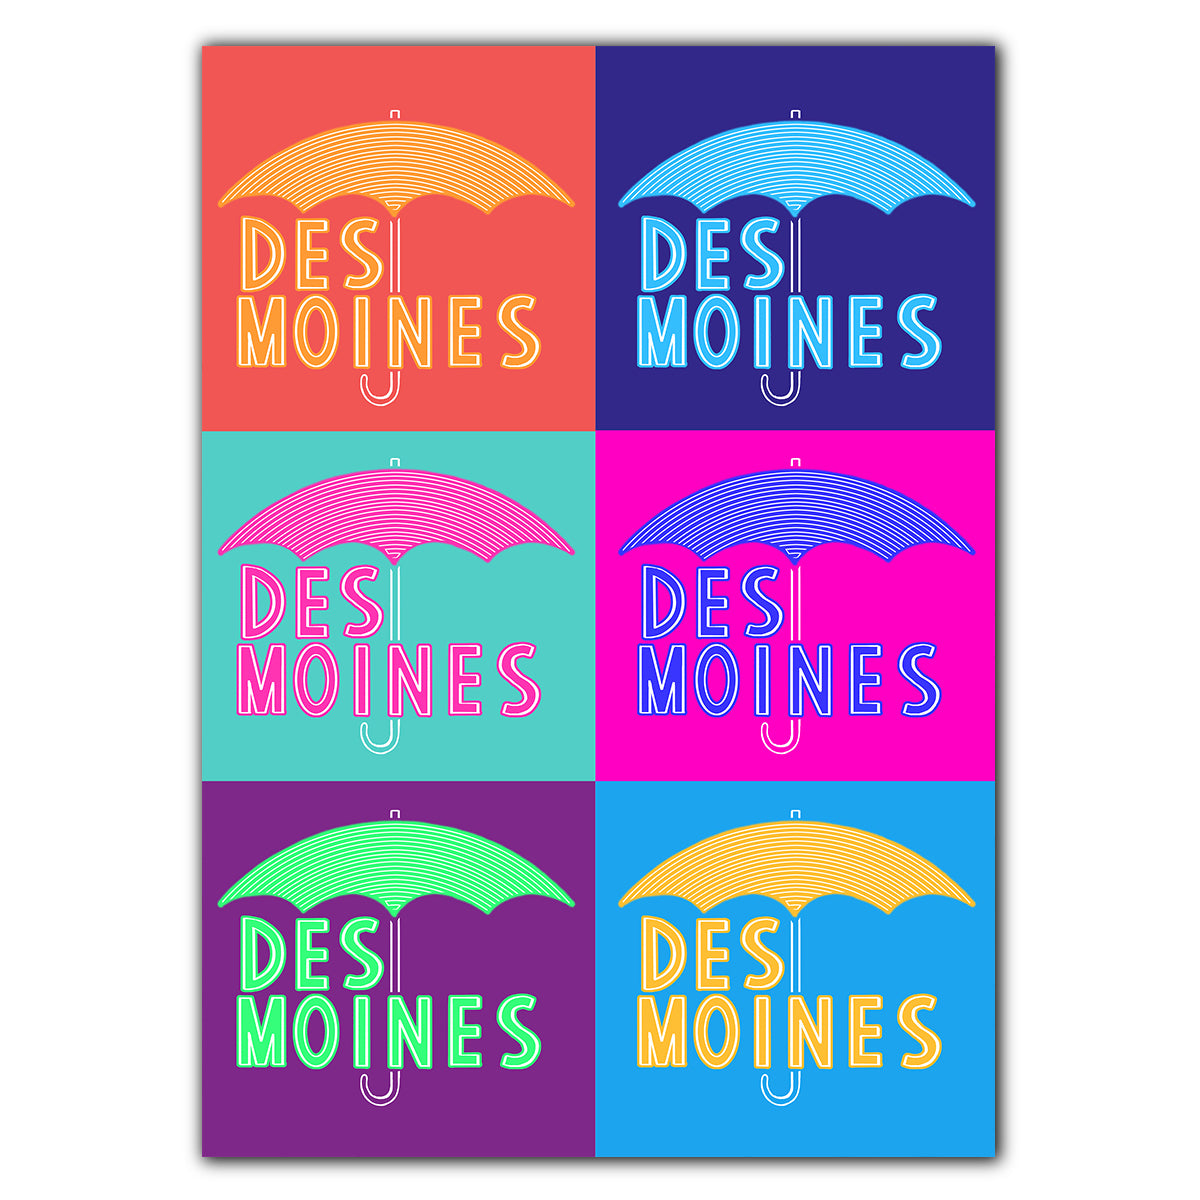 Des Moines Umbrella Pop Art Greeting Card